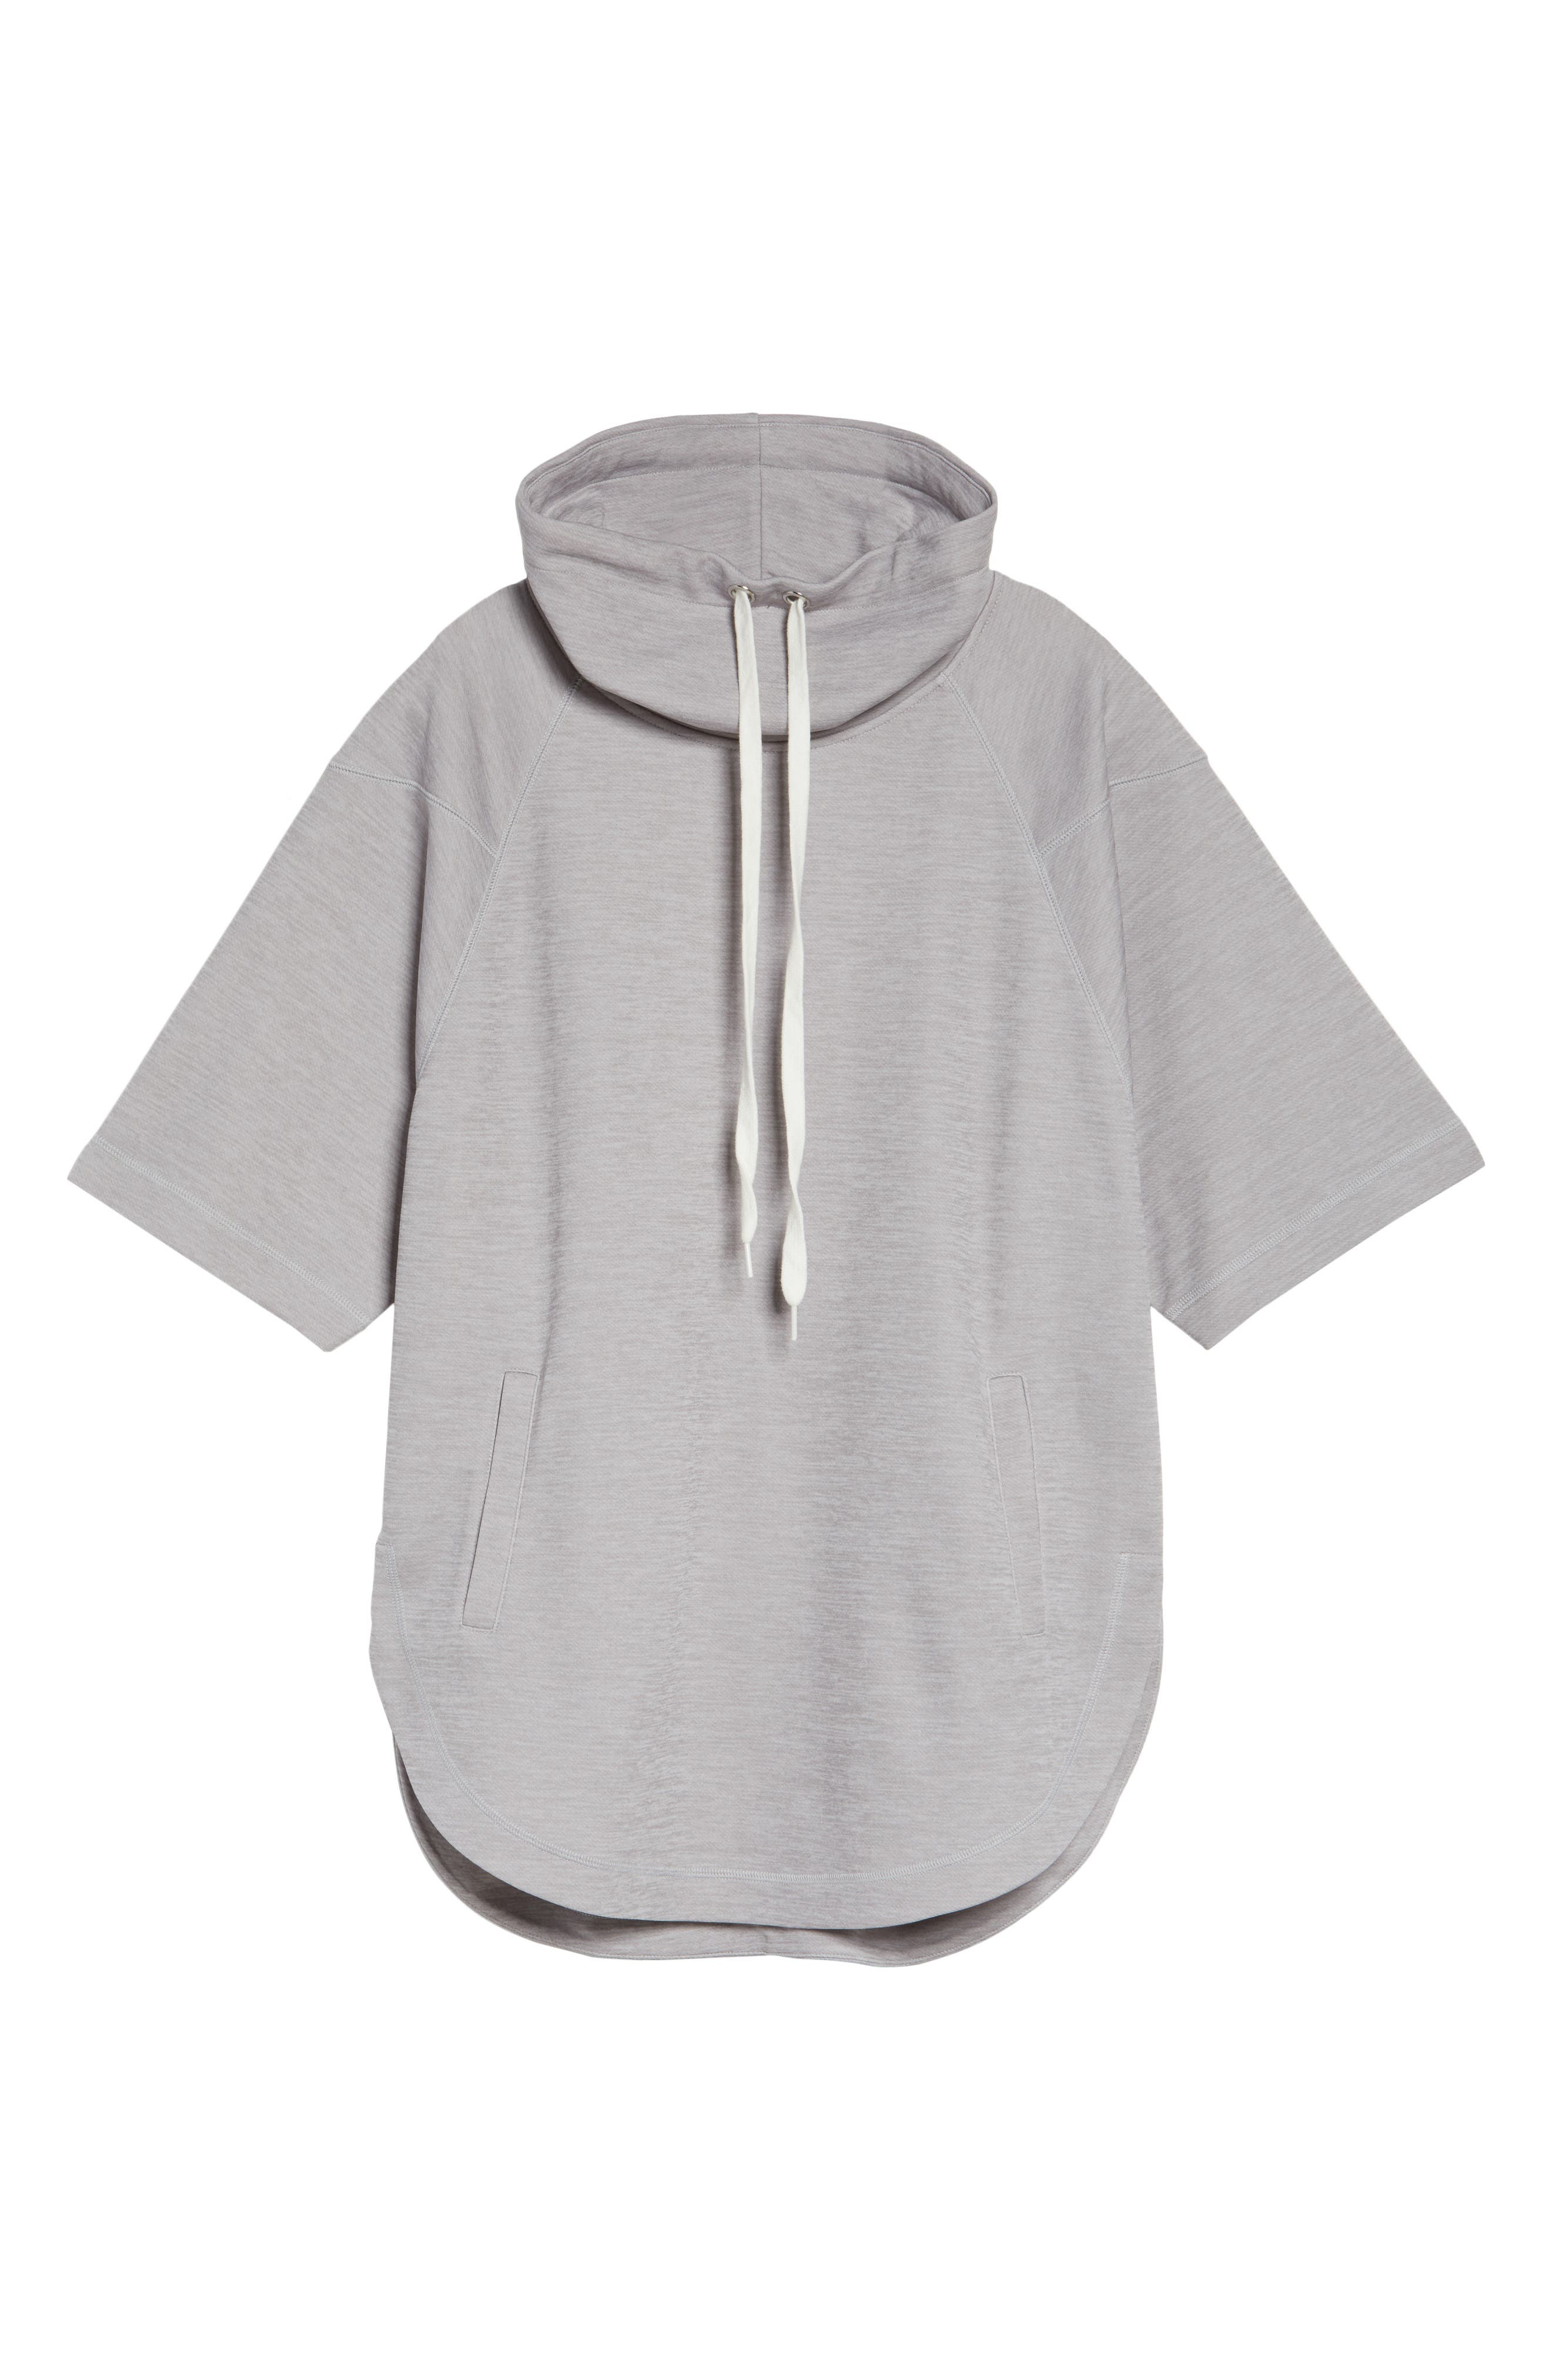 Get It Girl Pullover,                             Alternate thumbnail 13, color,